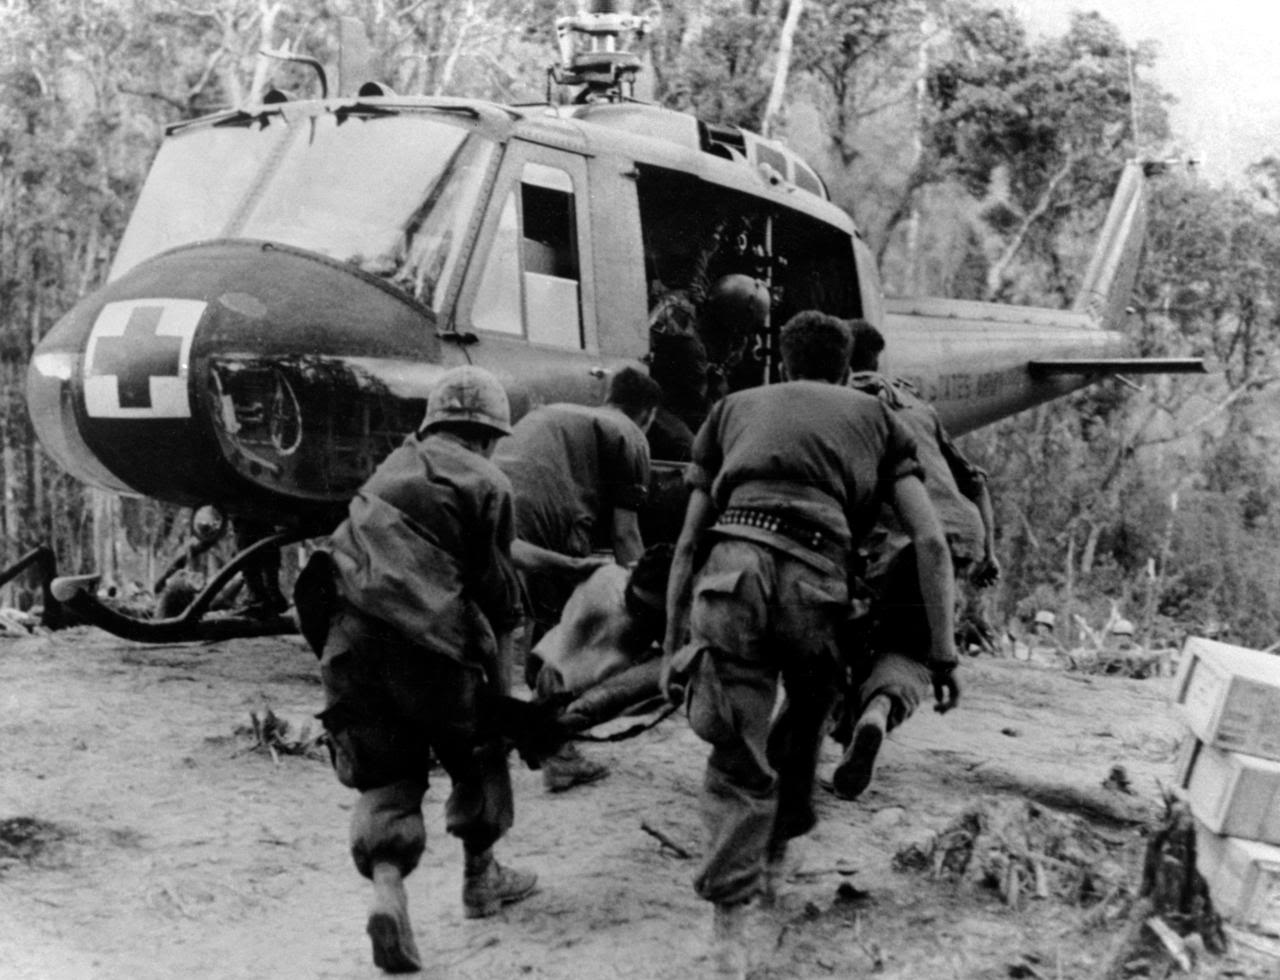 how did the vietnam war affect The vietnam war was never a constitutionally declared war under article 1, section 8 of the us constitution rather, it was a military action congress gave president lyndon johnson the power to initiate with its passing of the 1964 gulf of tonkin resolution.